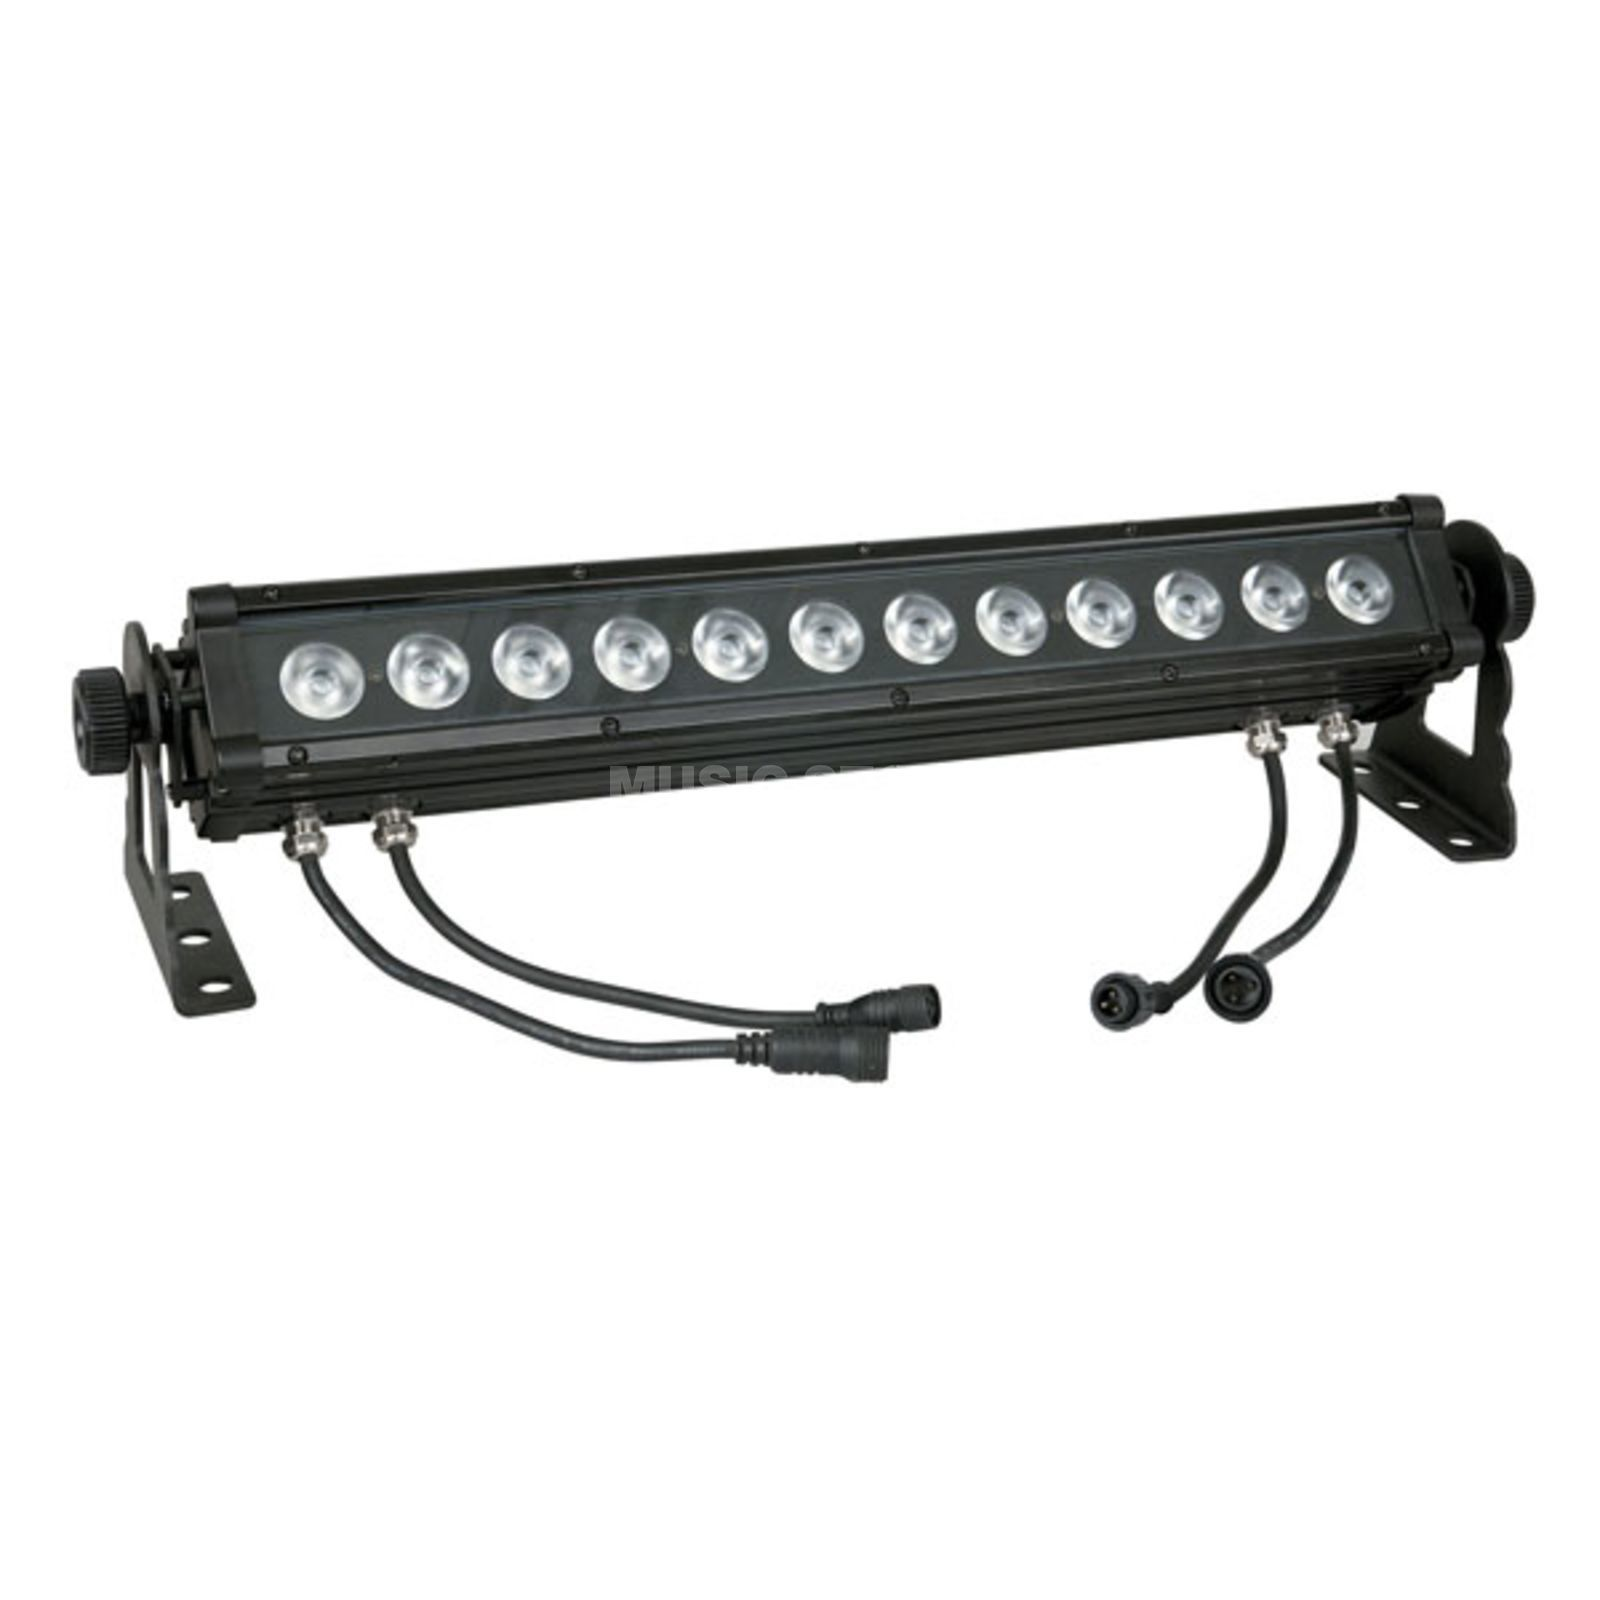 Showtec Cameleon Bar 12/3 IP-65, 12 x 3-in-1-RGB-LED Produktbillede